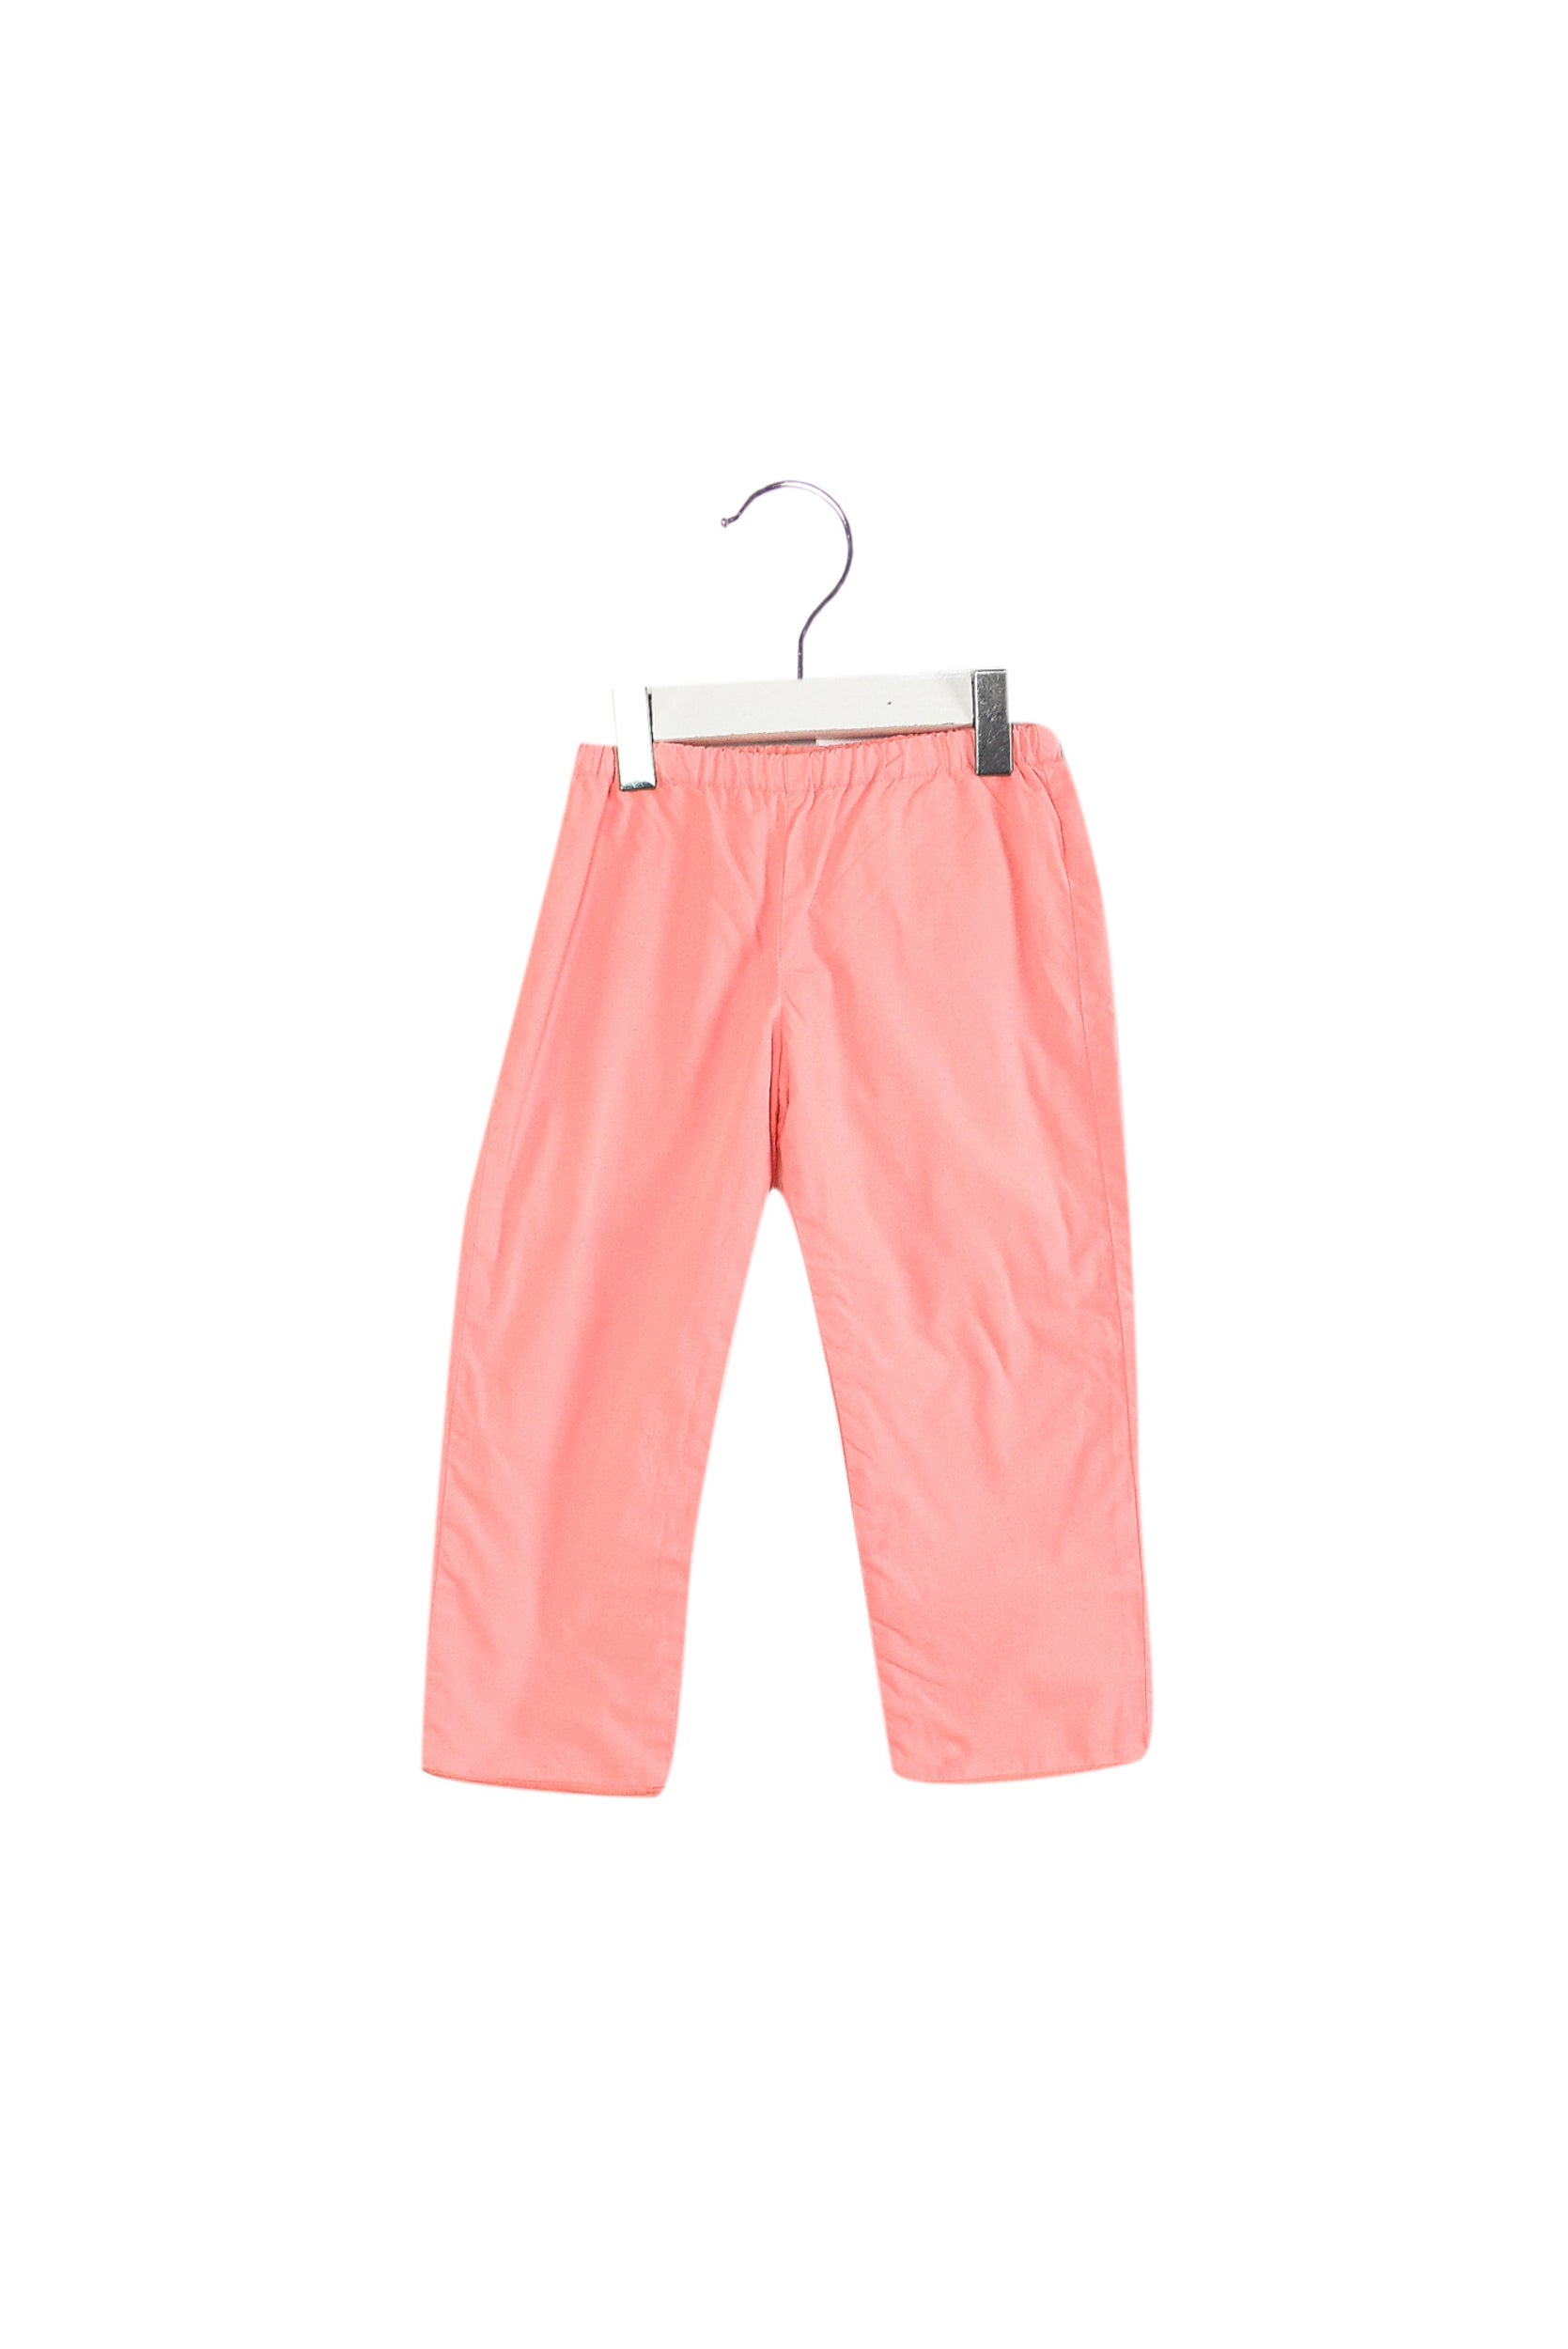 Bonpoint Casual Pants 3T